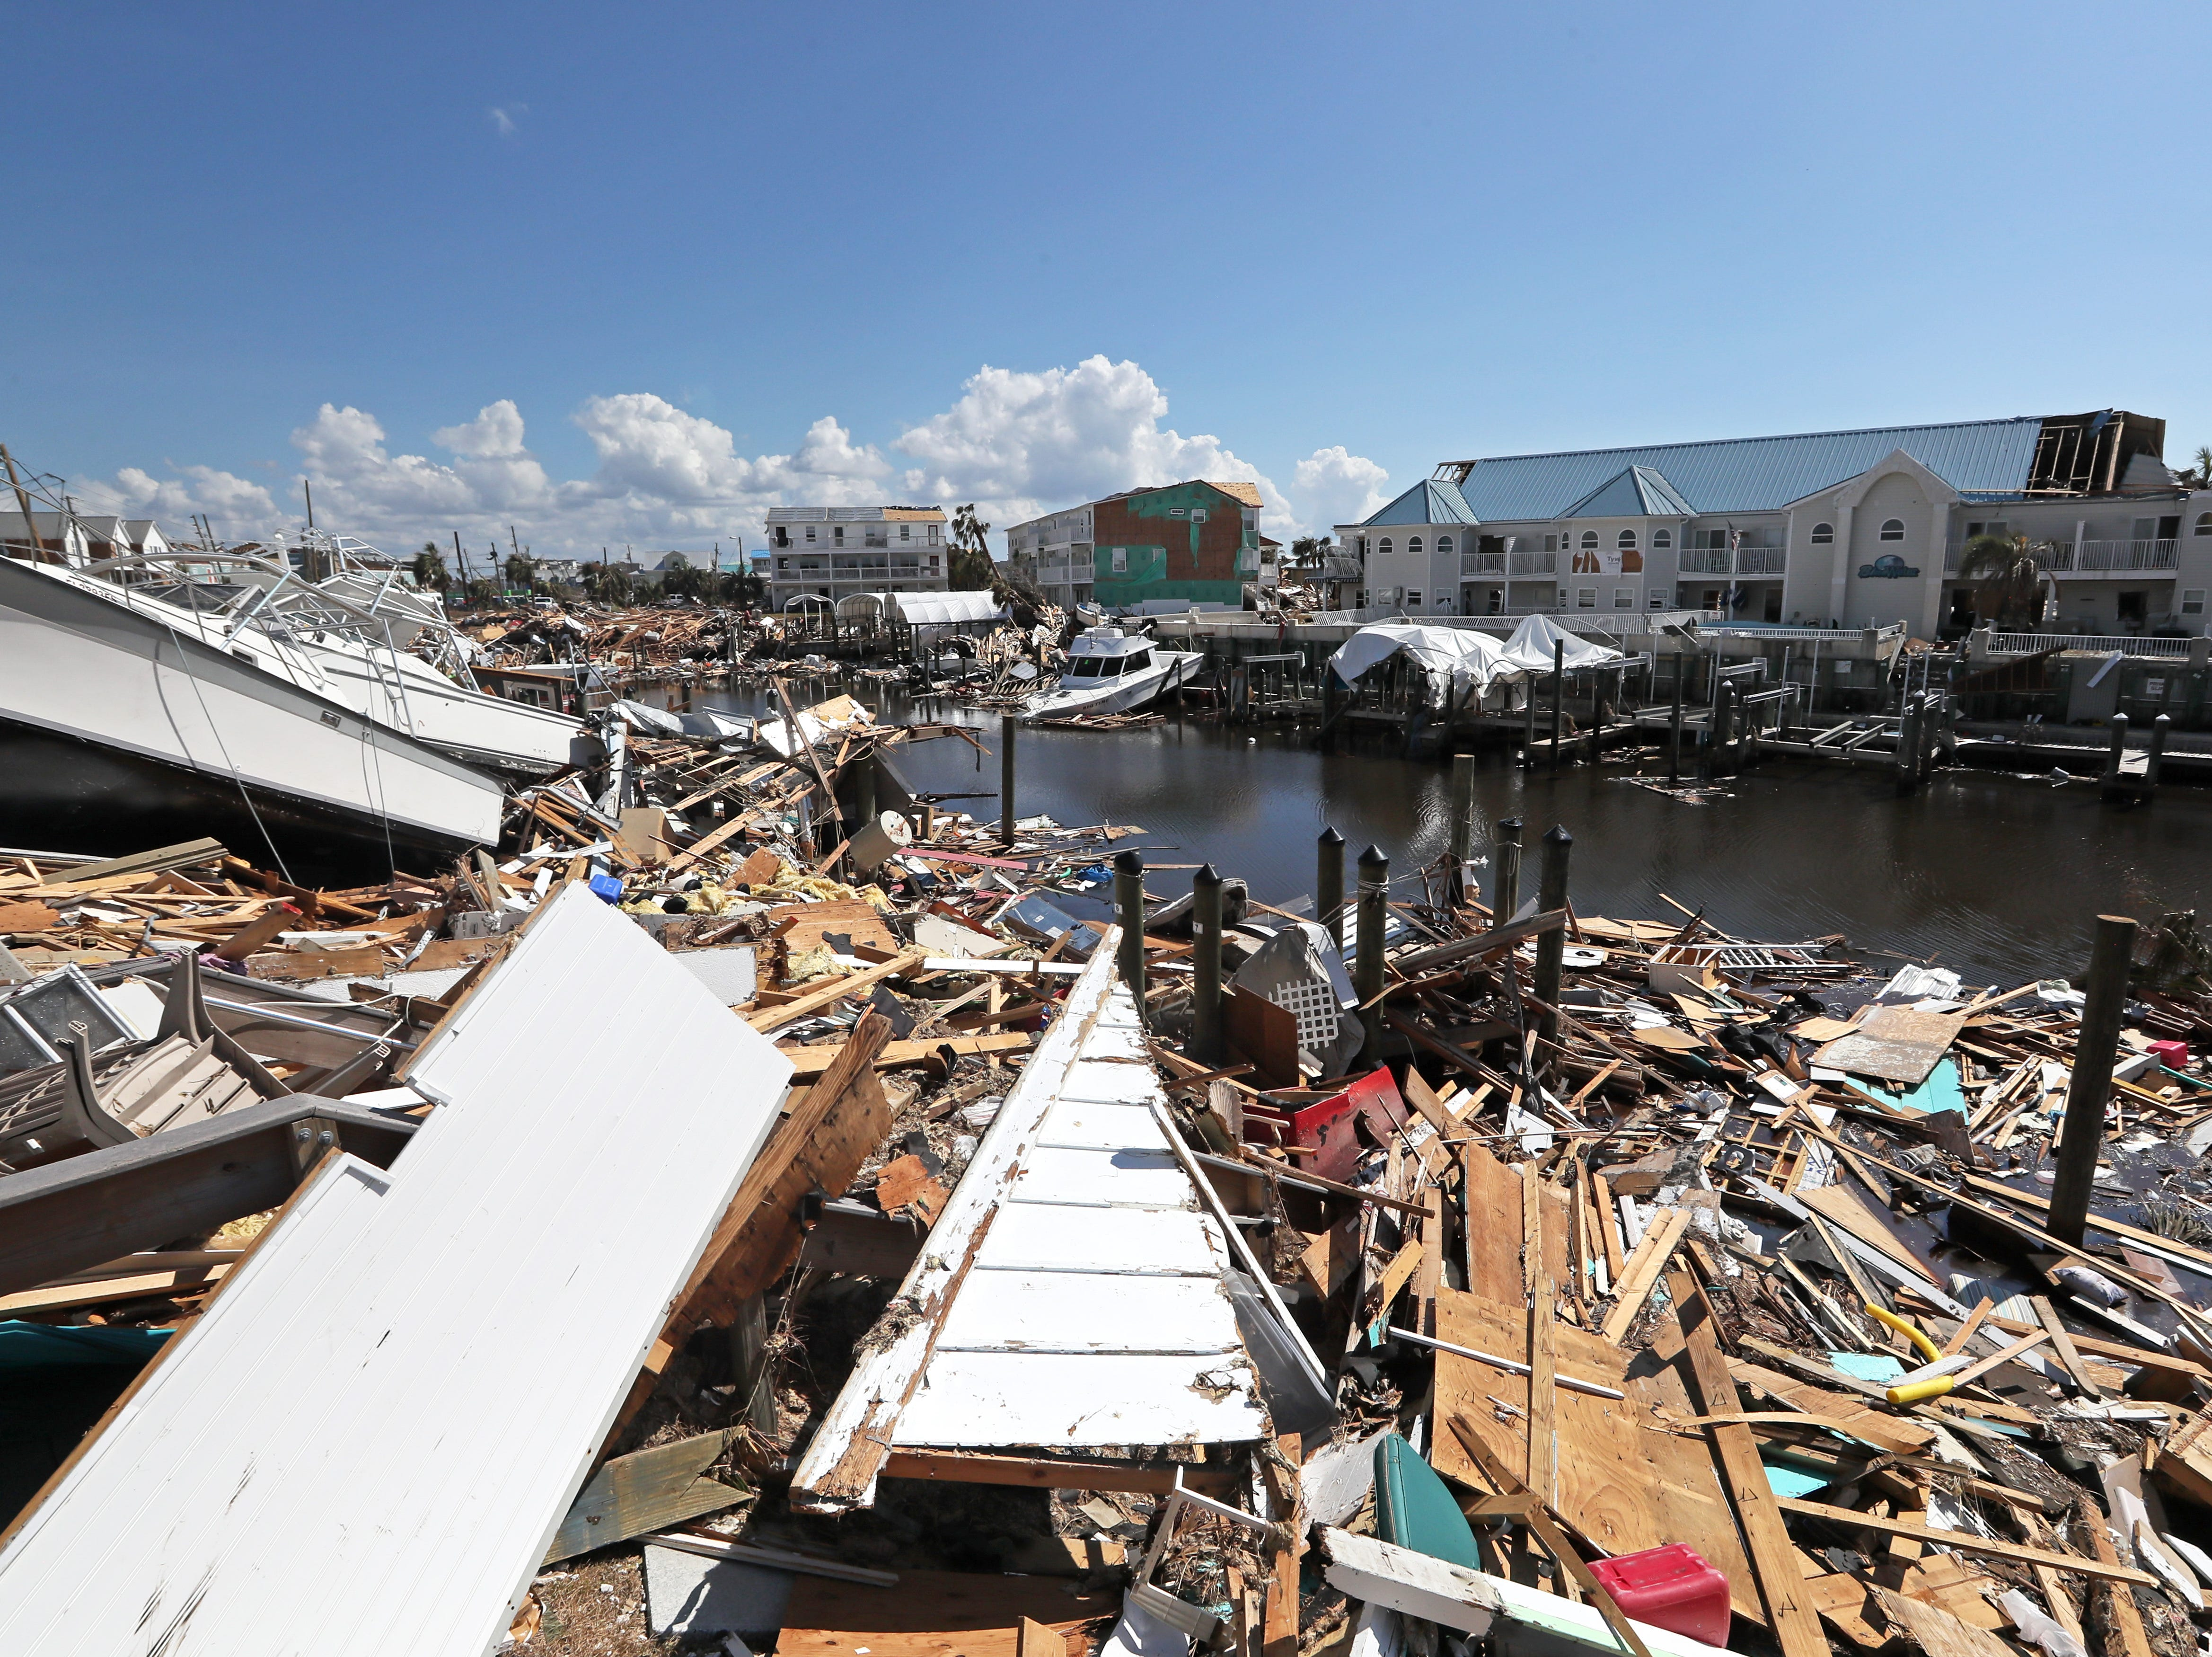 Broken boats and homes litter the waterways in Mexico Beach on Wednesday, Oct. 17, 2018, one week after Hurricane Michael ripped through the coastal Florida town.